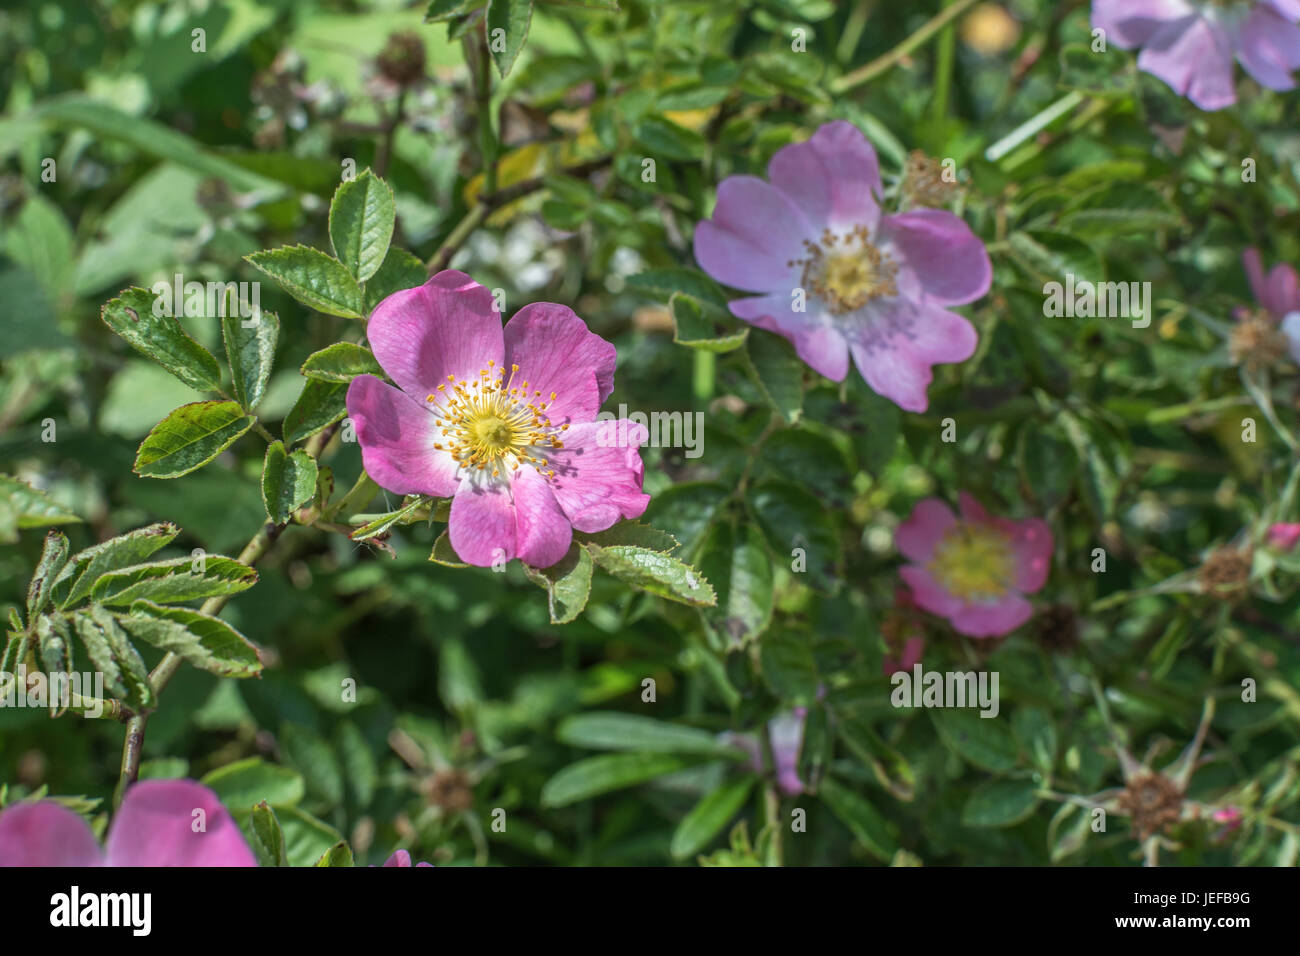 Wild rose / Dog Rose / Rosa canina flowers in bloom (June). Source of 'rose hips'. Stock Photo